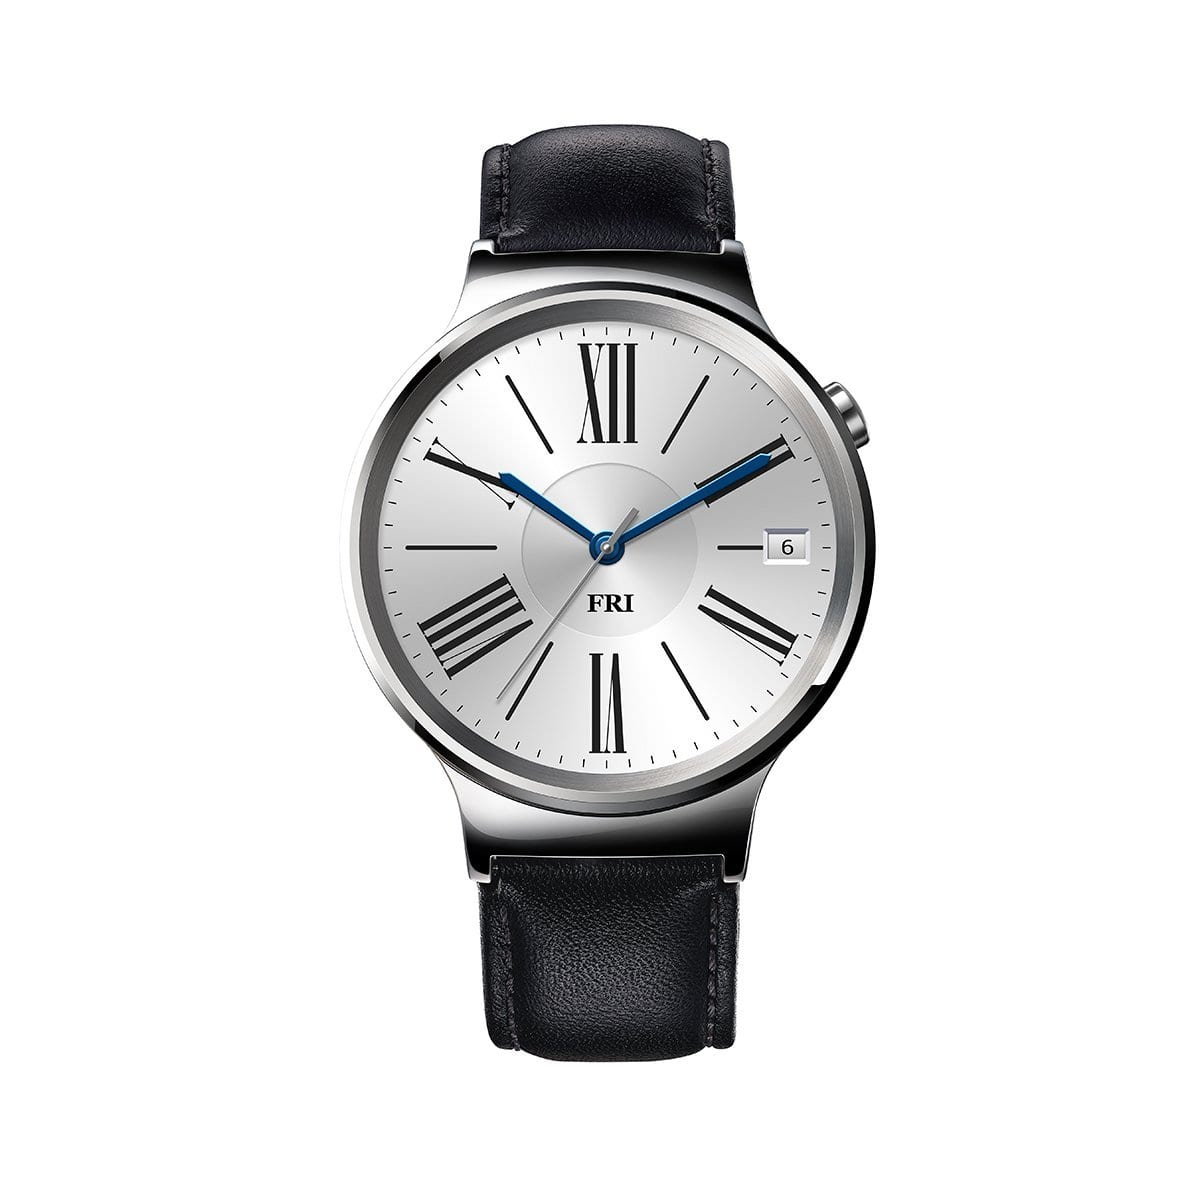 Huawei Stainless Steel Smartwatch w/ Leather Strap  $255 + Free Shipping